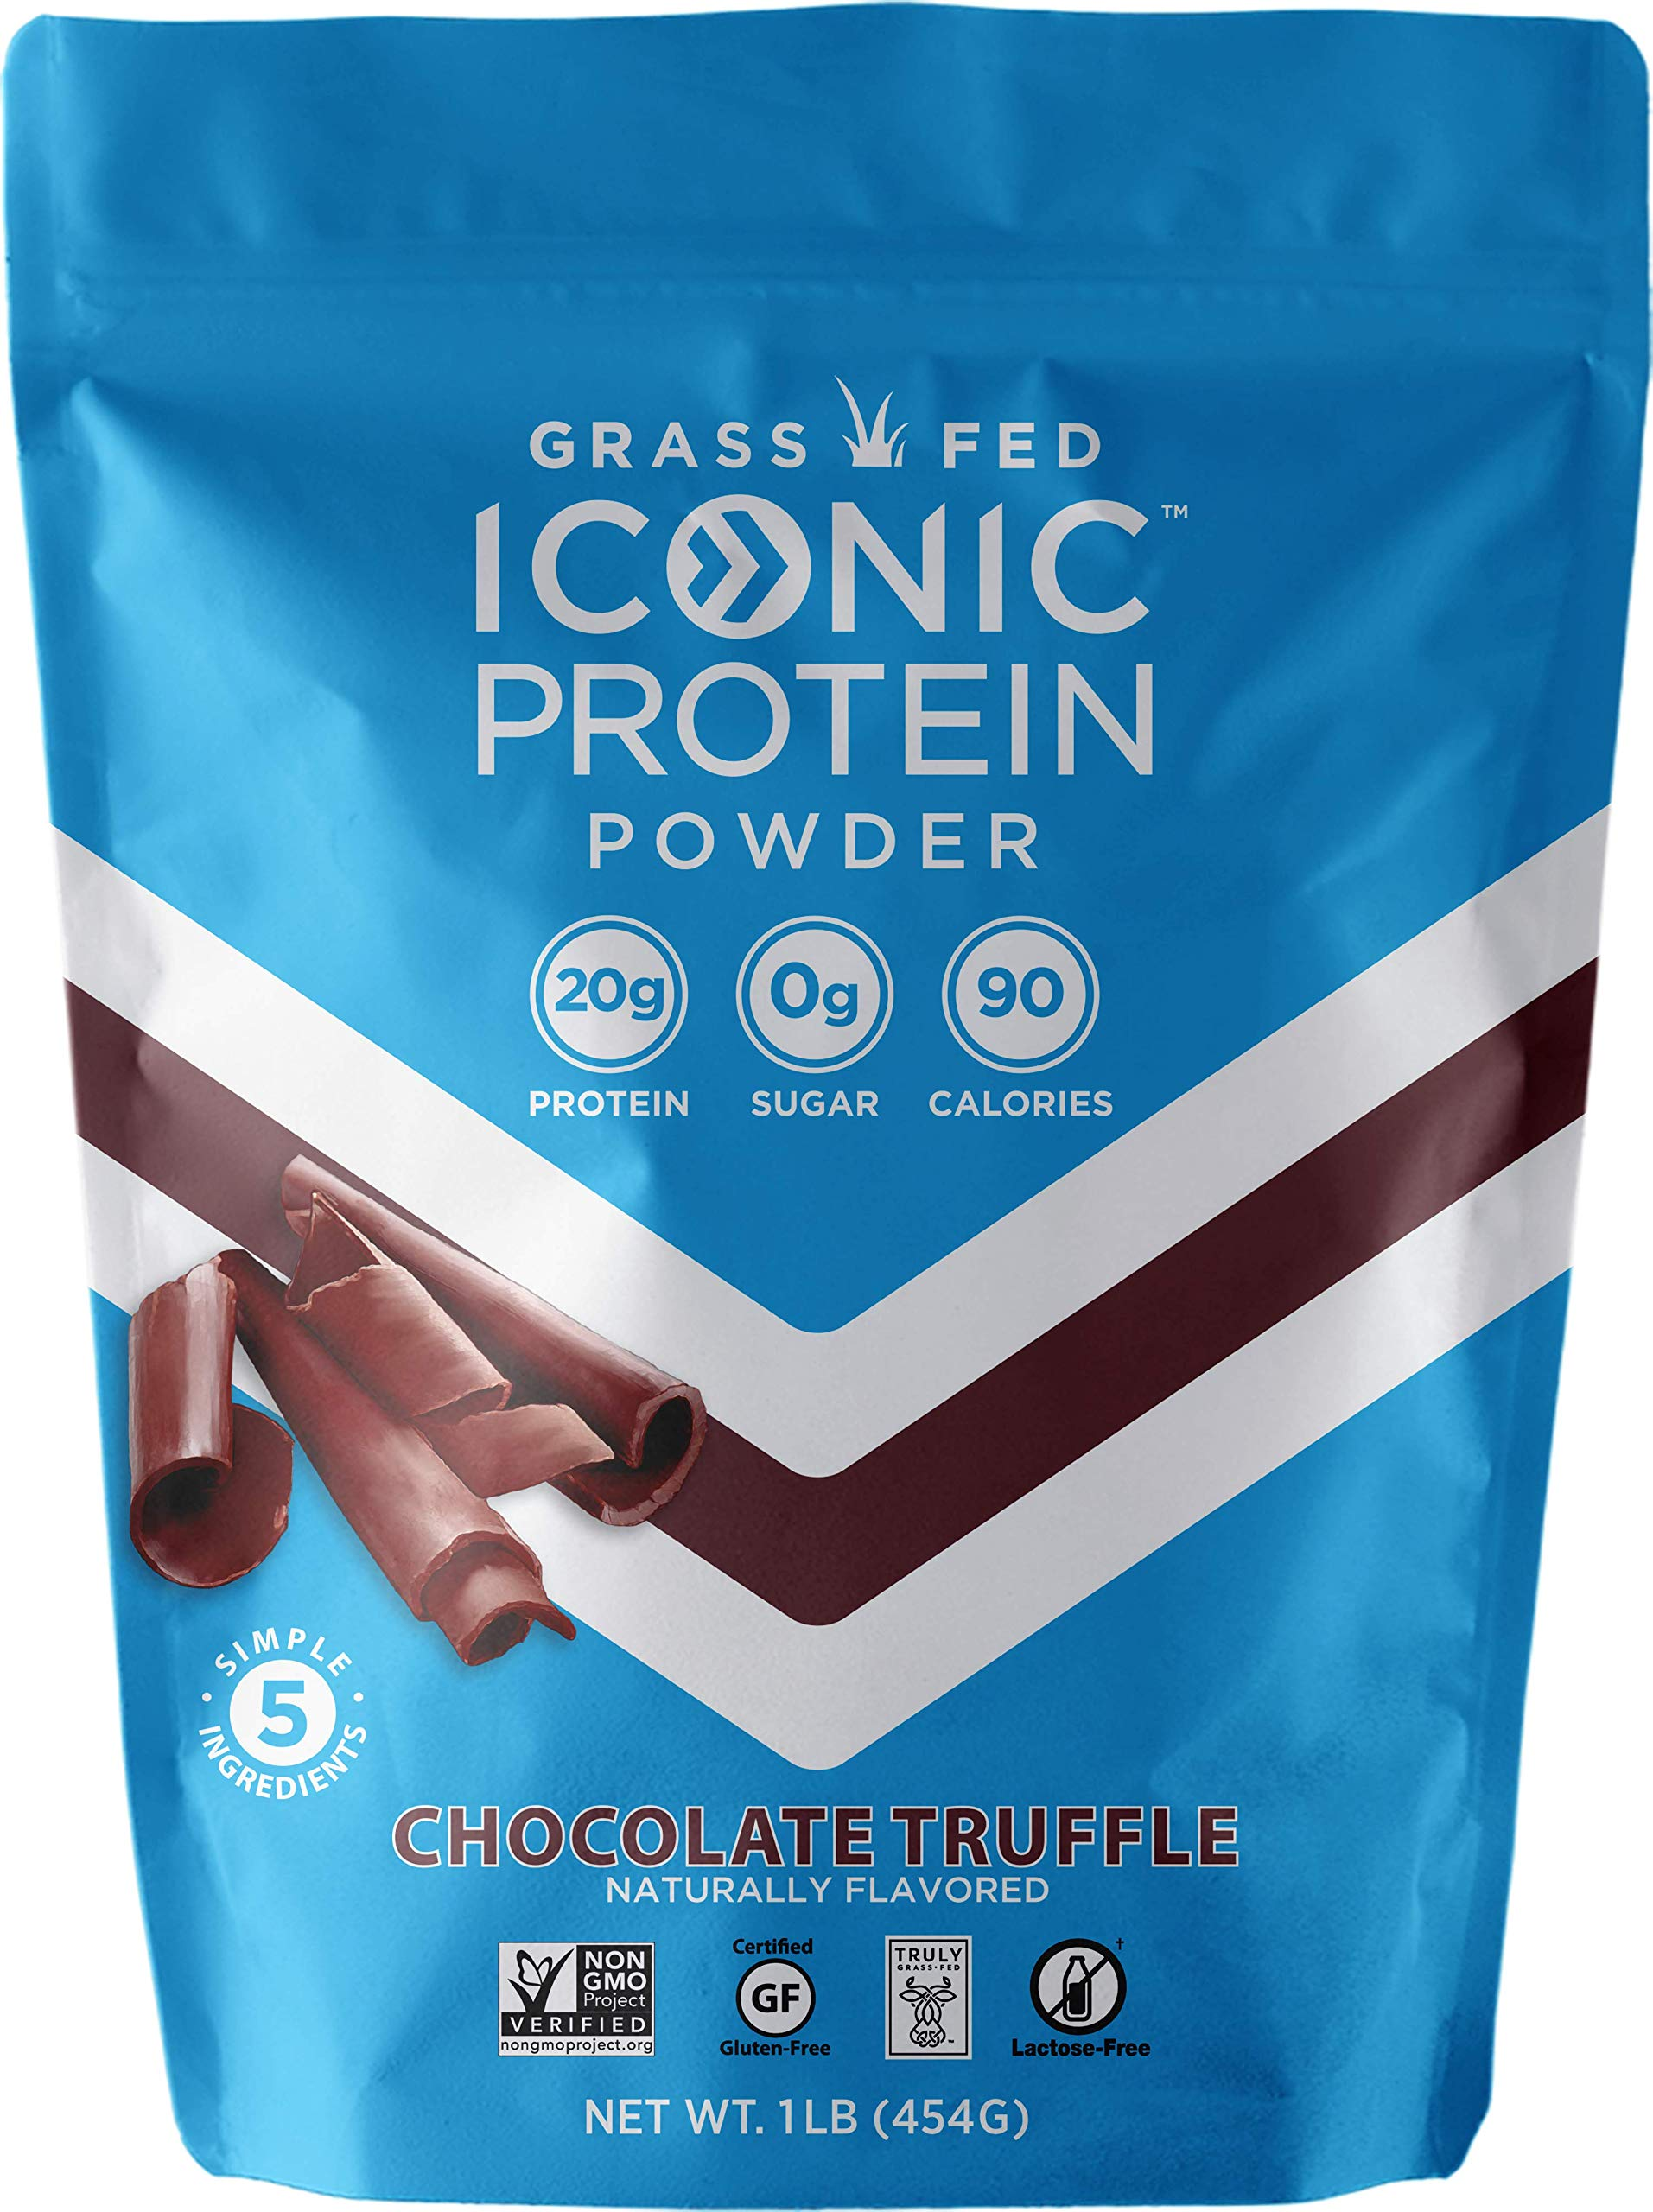 Iconic Protein Powder, Chocolate Truffle, 1 Lb (17 Serving) | Sugar Free, Low Carb Protein Shake | 20g Grass Fed Whey Protein & Casein | Lactose Free, Gluten Free, Kosher, Non-GMO | Keto Friendly by ICONIC